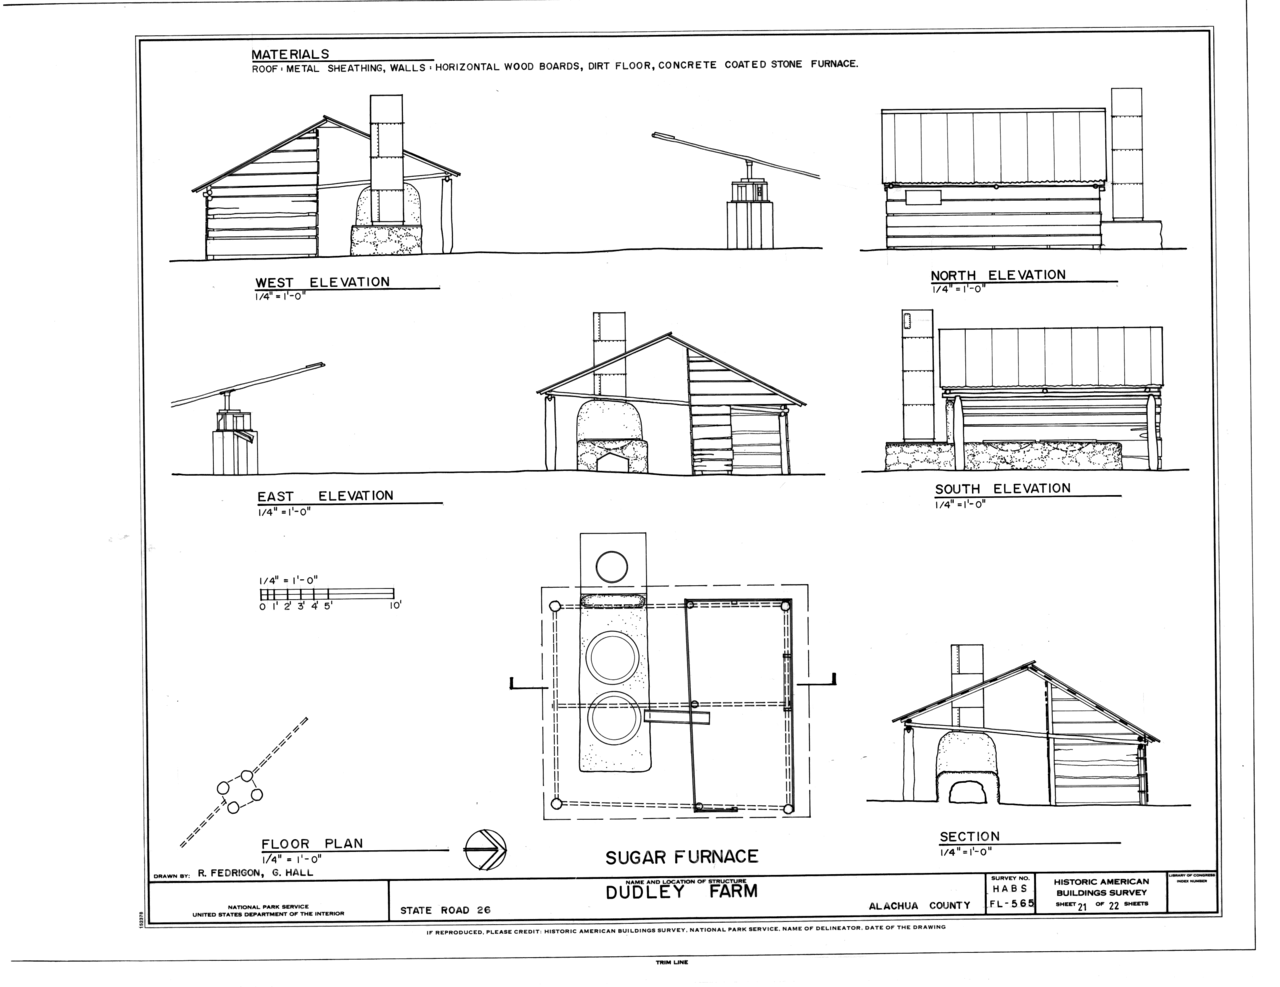 Building Elevation With Plan : File sugar furnace elevations floor plan and section